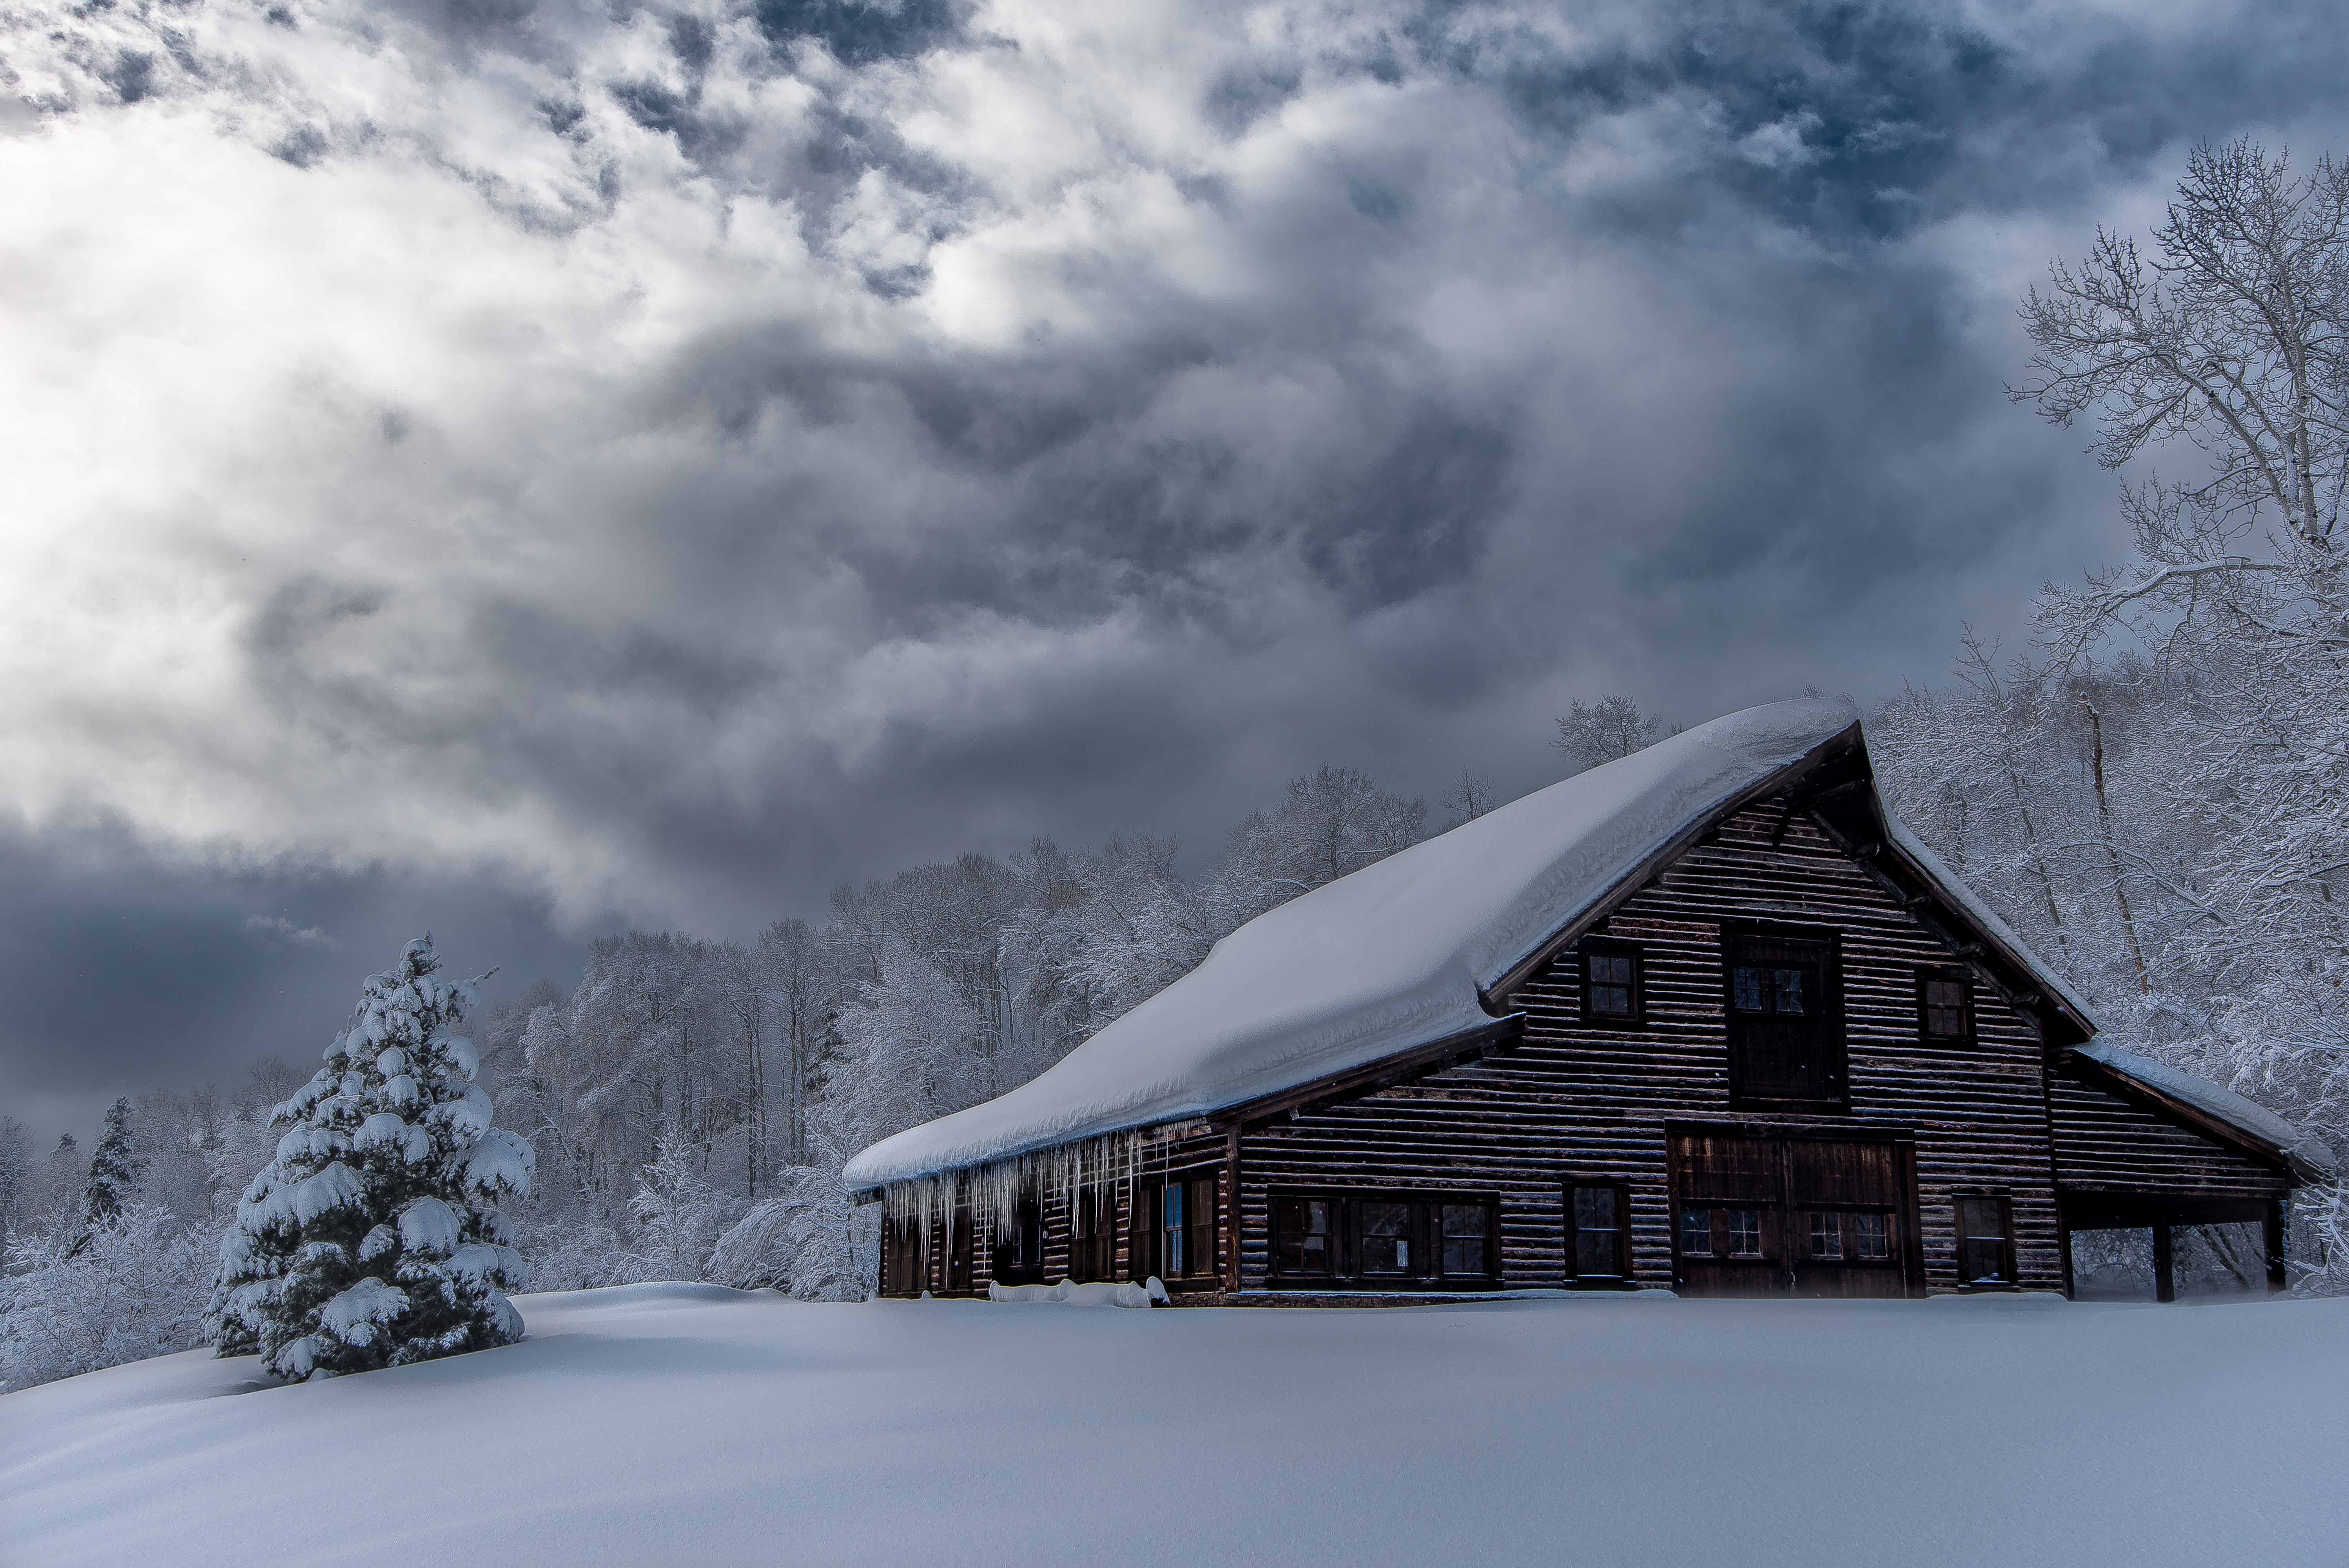 snow covered barn with overcast winter sky